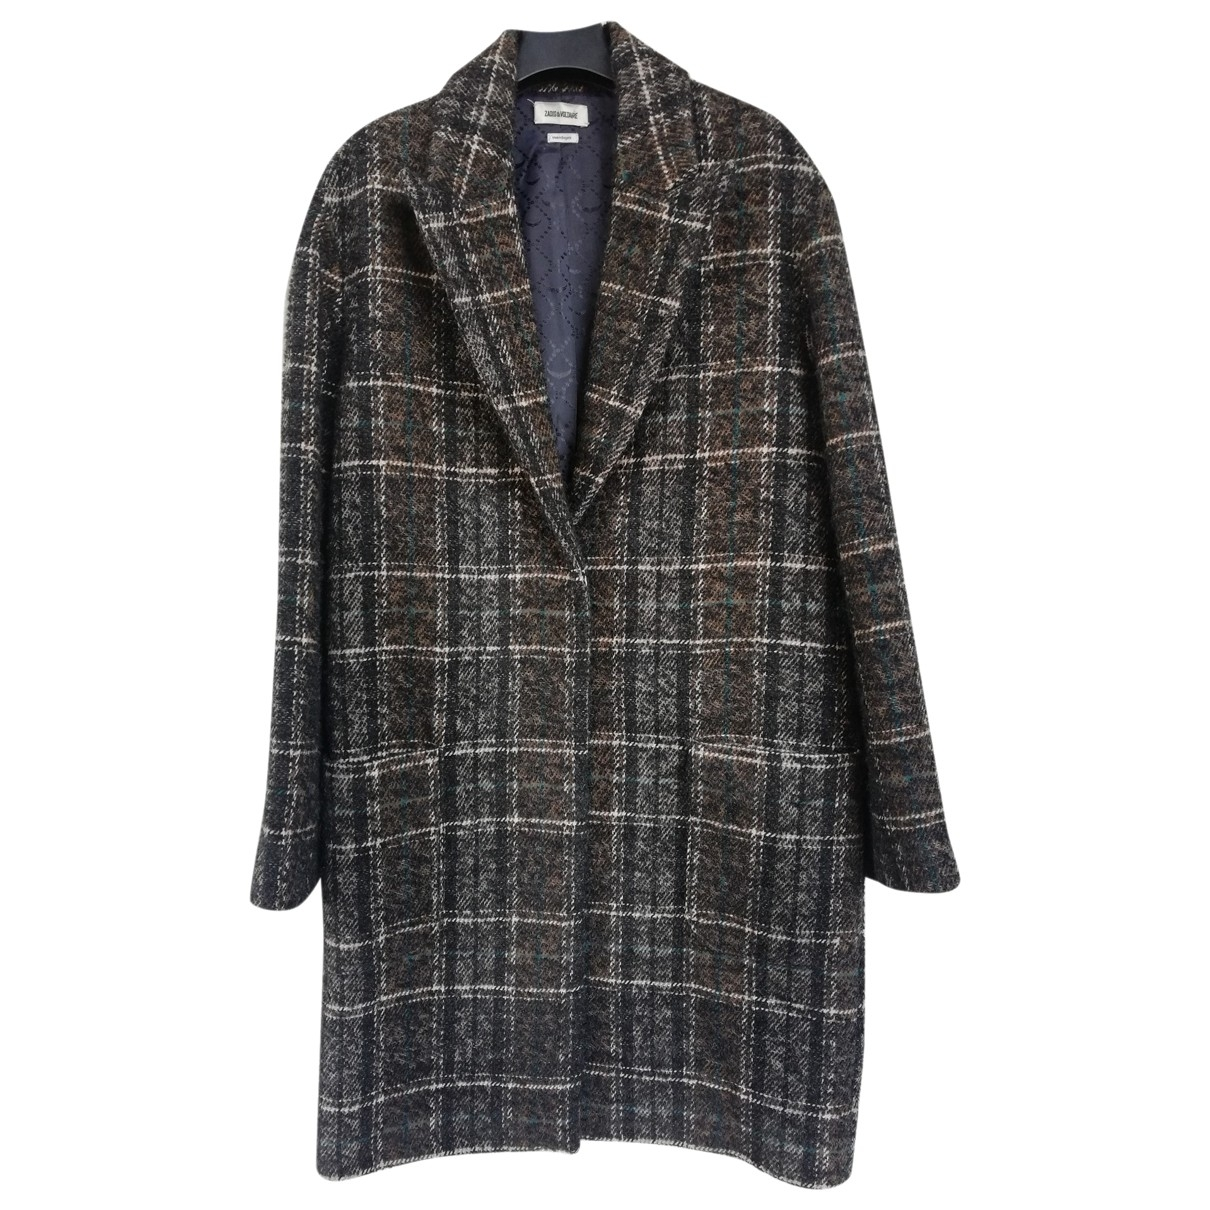 Zadig & Voltaire \N Multicolour Wool coat for Women S International